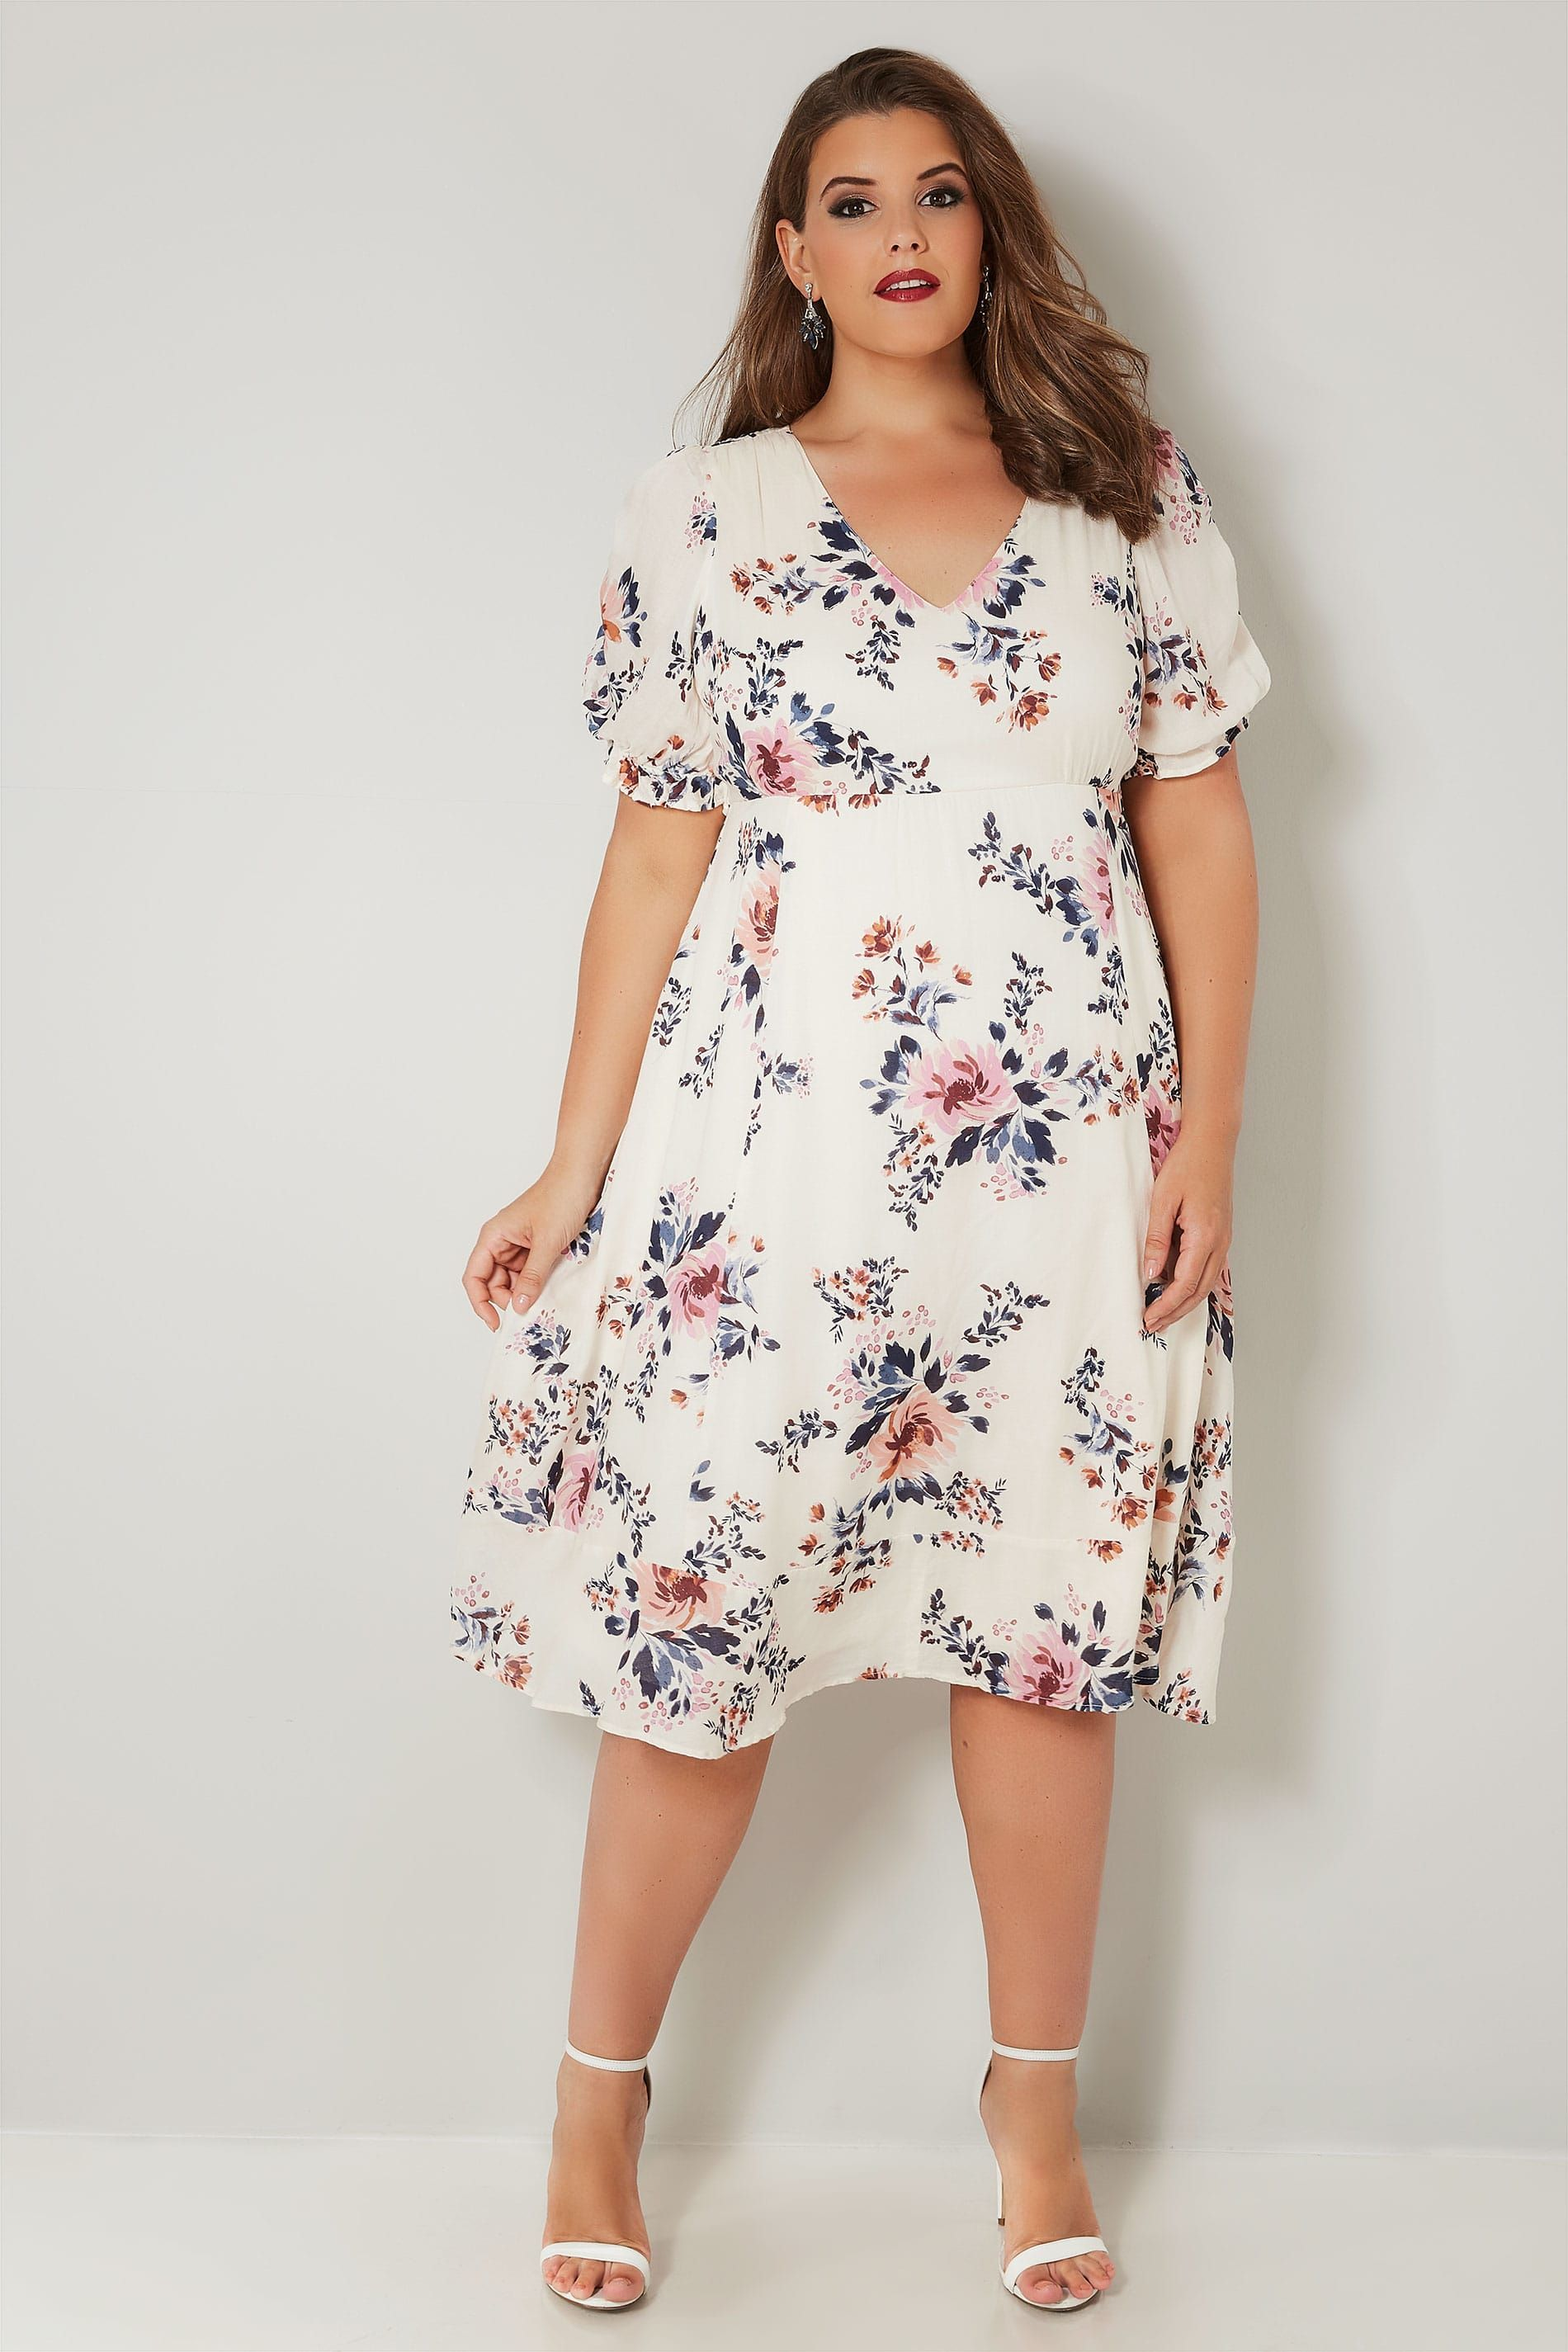 YOURS LONDON Ivory Floral Tea Dress, Plus size 16 to 32 ...